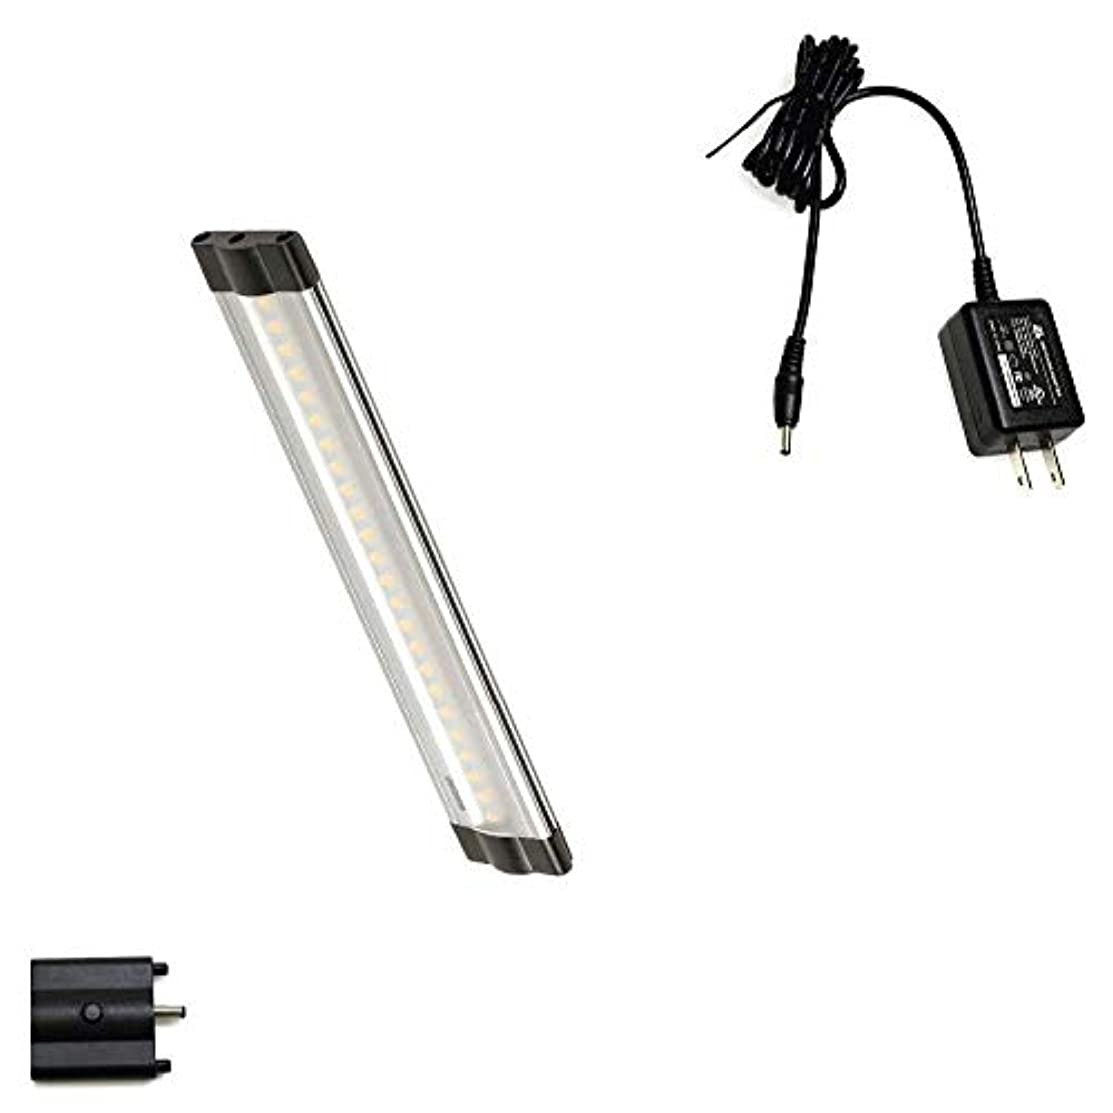 Lightkiwi Dimmable LED Under Cabinet Lighting 1 Panel Kit, 6 Inches Each, Warm White (3000K), 3 Watt, 24VDC, On/Off Switch & All Accessories Included, Low Profile, Sturdy Aluminum Body, UL Listed